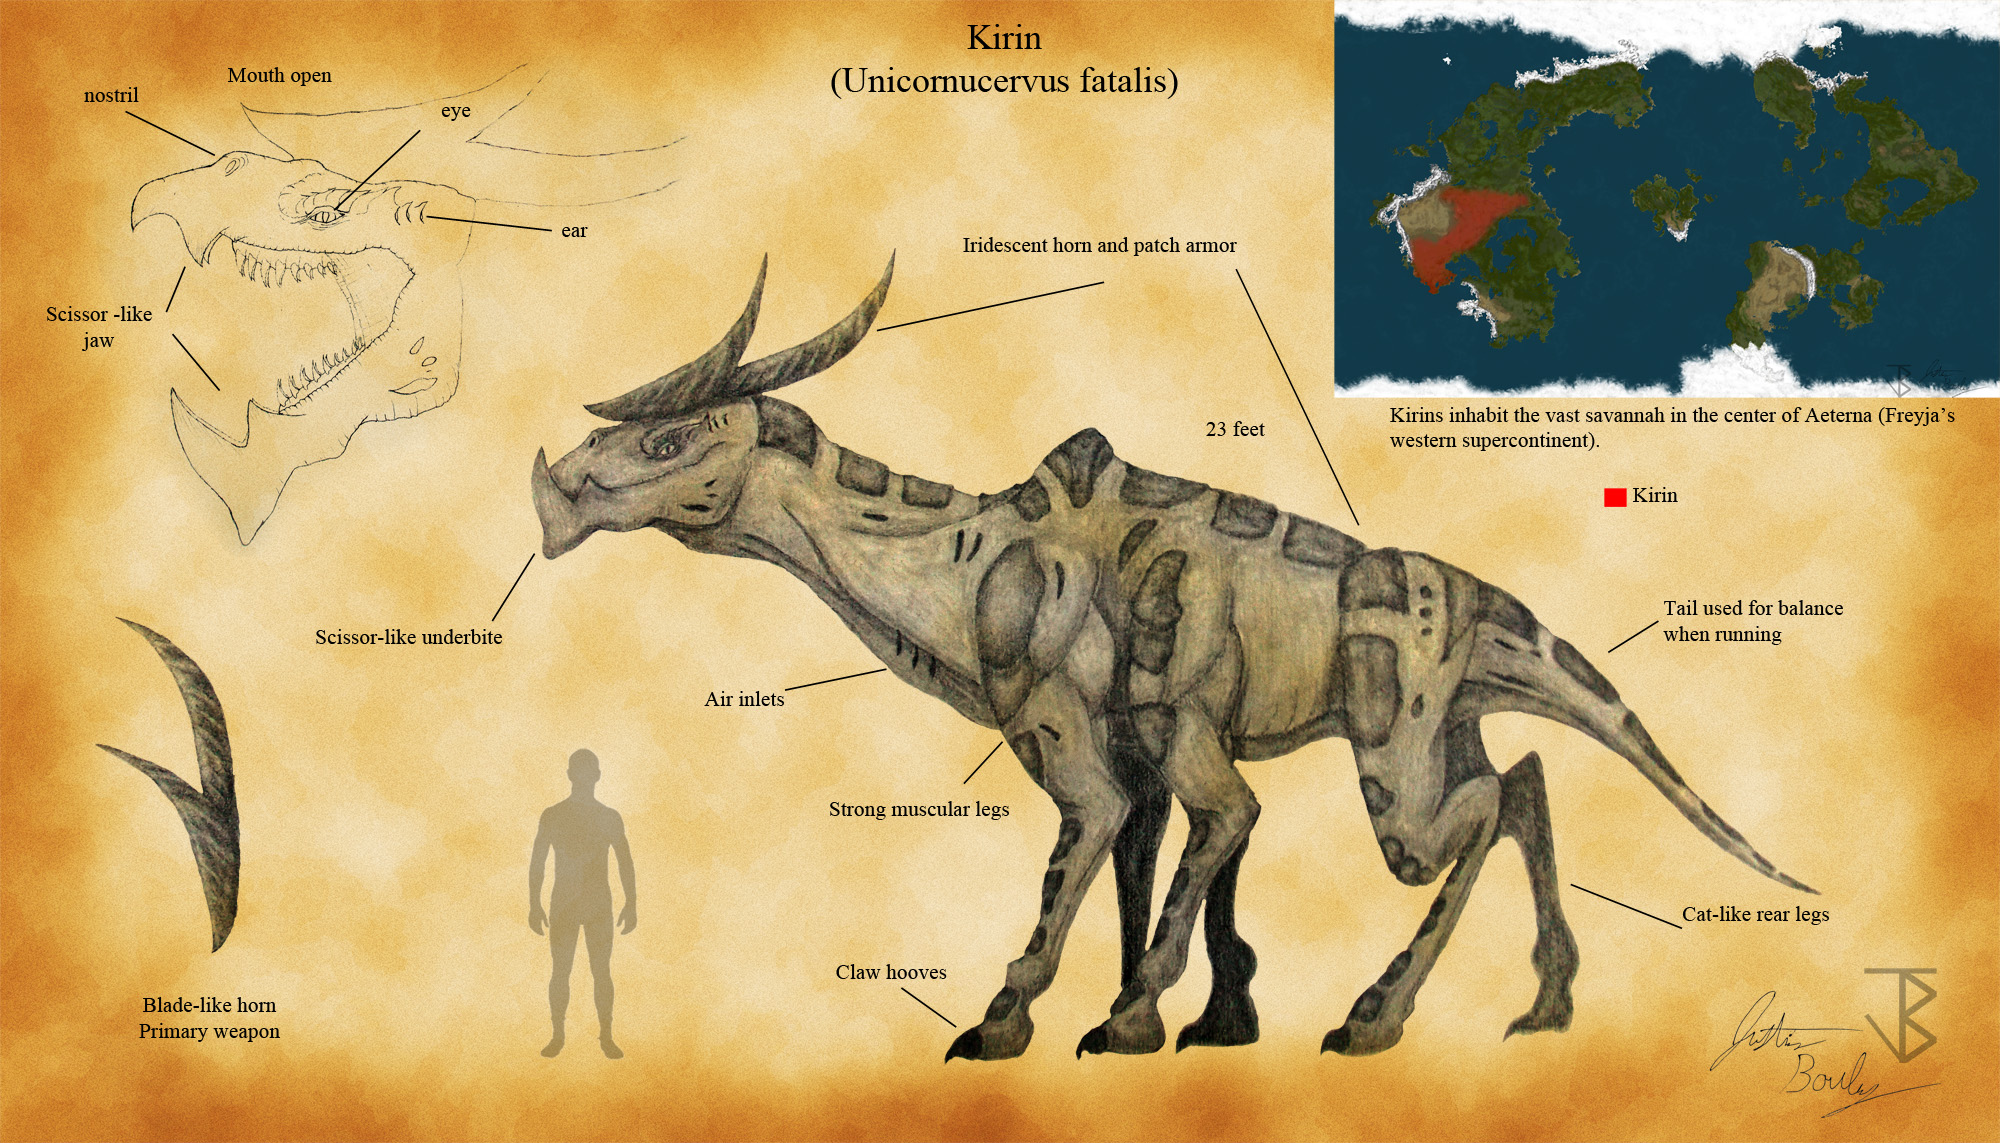 dinosaur dialect and diety in the leviathan and the behemot What the heck is a leviathan and why does the bible mention behemoth were these descriptions of actual dinosaurs, or just myths borrowed from pagan neighbors job, psalms, and isaiah mention .